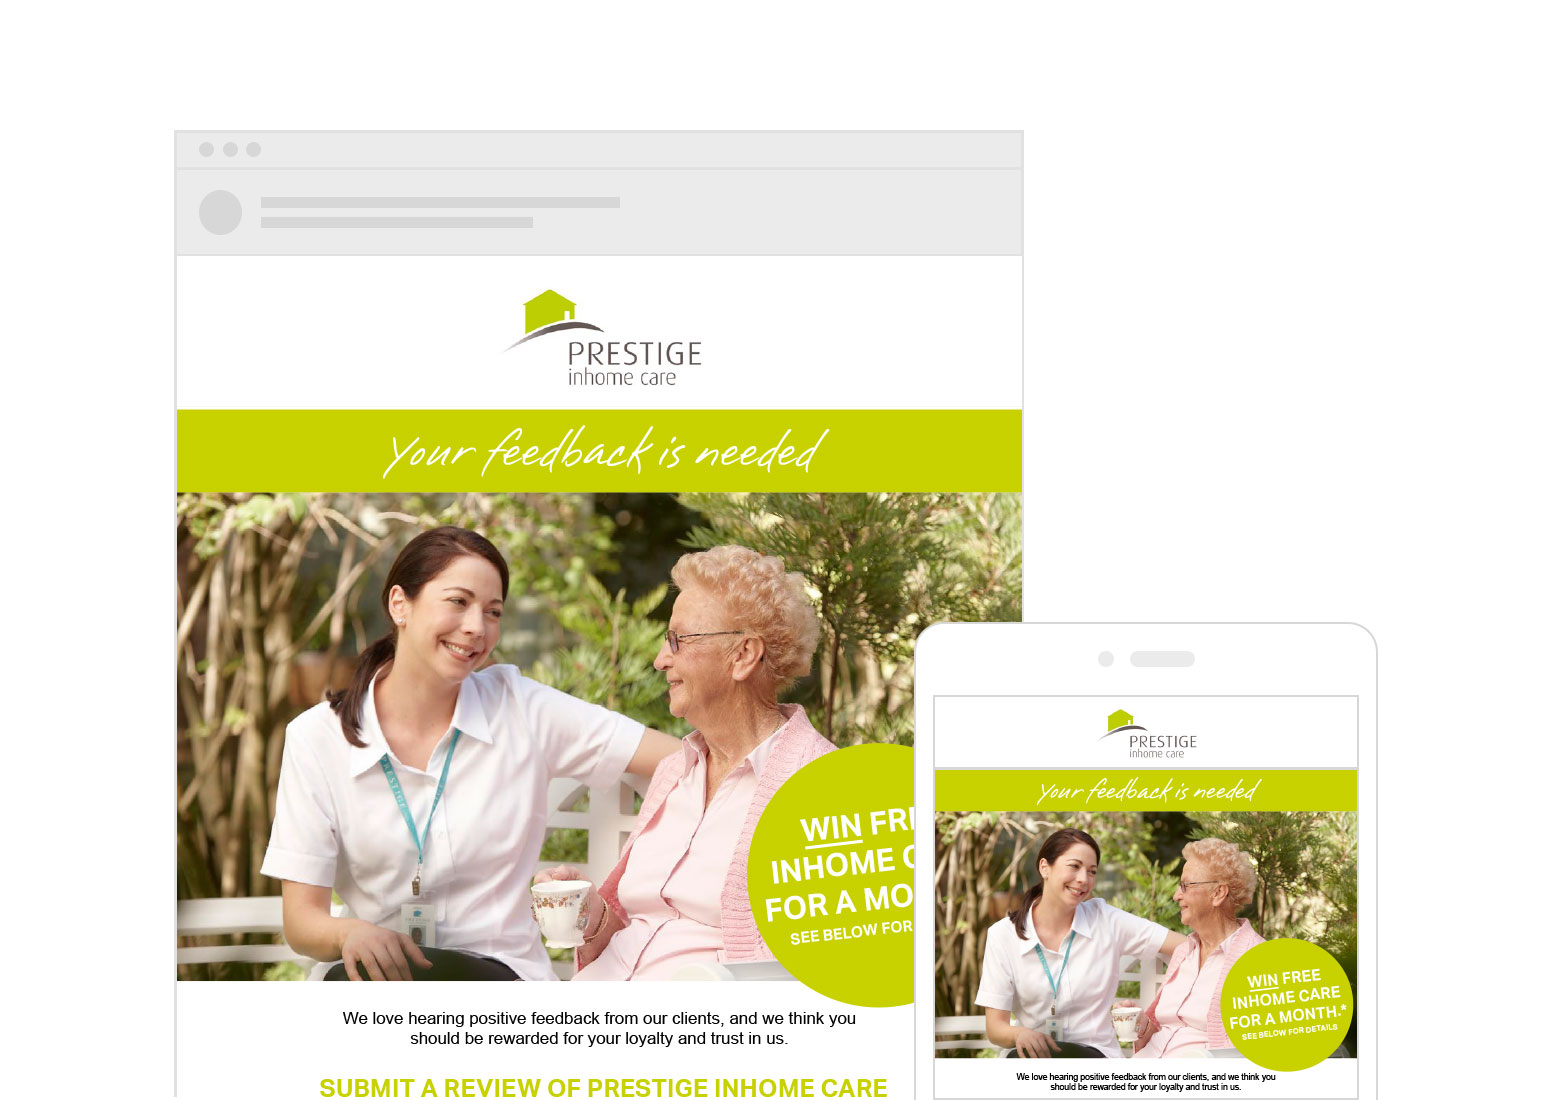 Prestige Inhome Care by Rising Creative